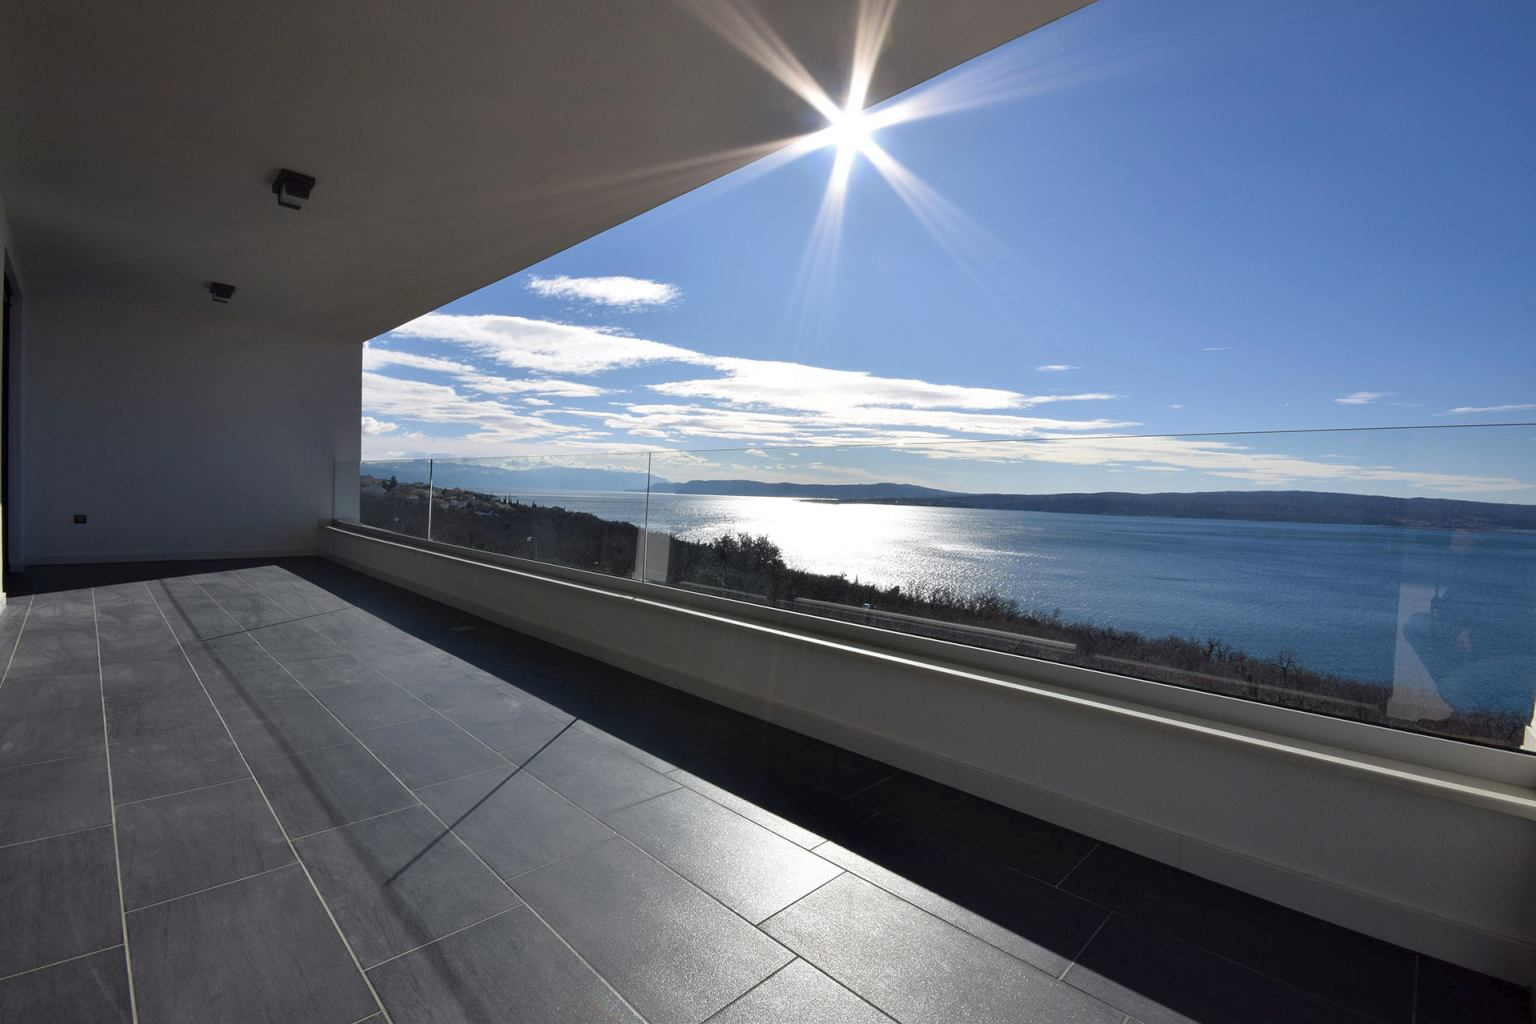 Properties in Croatia - panoramic apartment with sea views in Crikvenica, Croatia for sale.